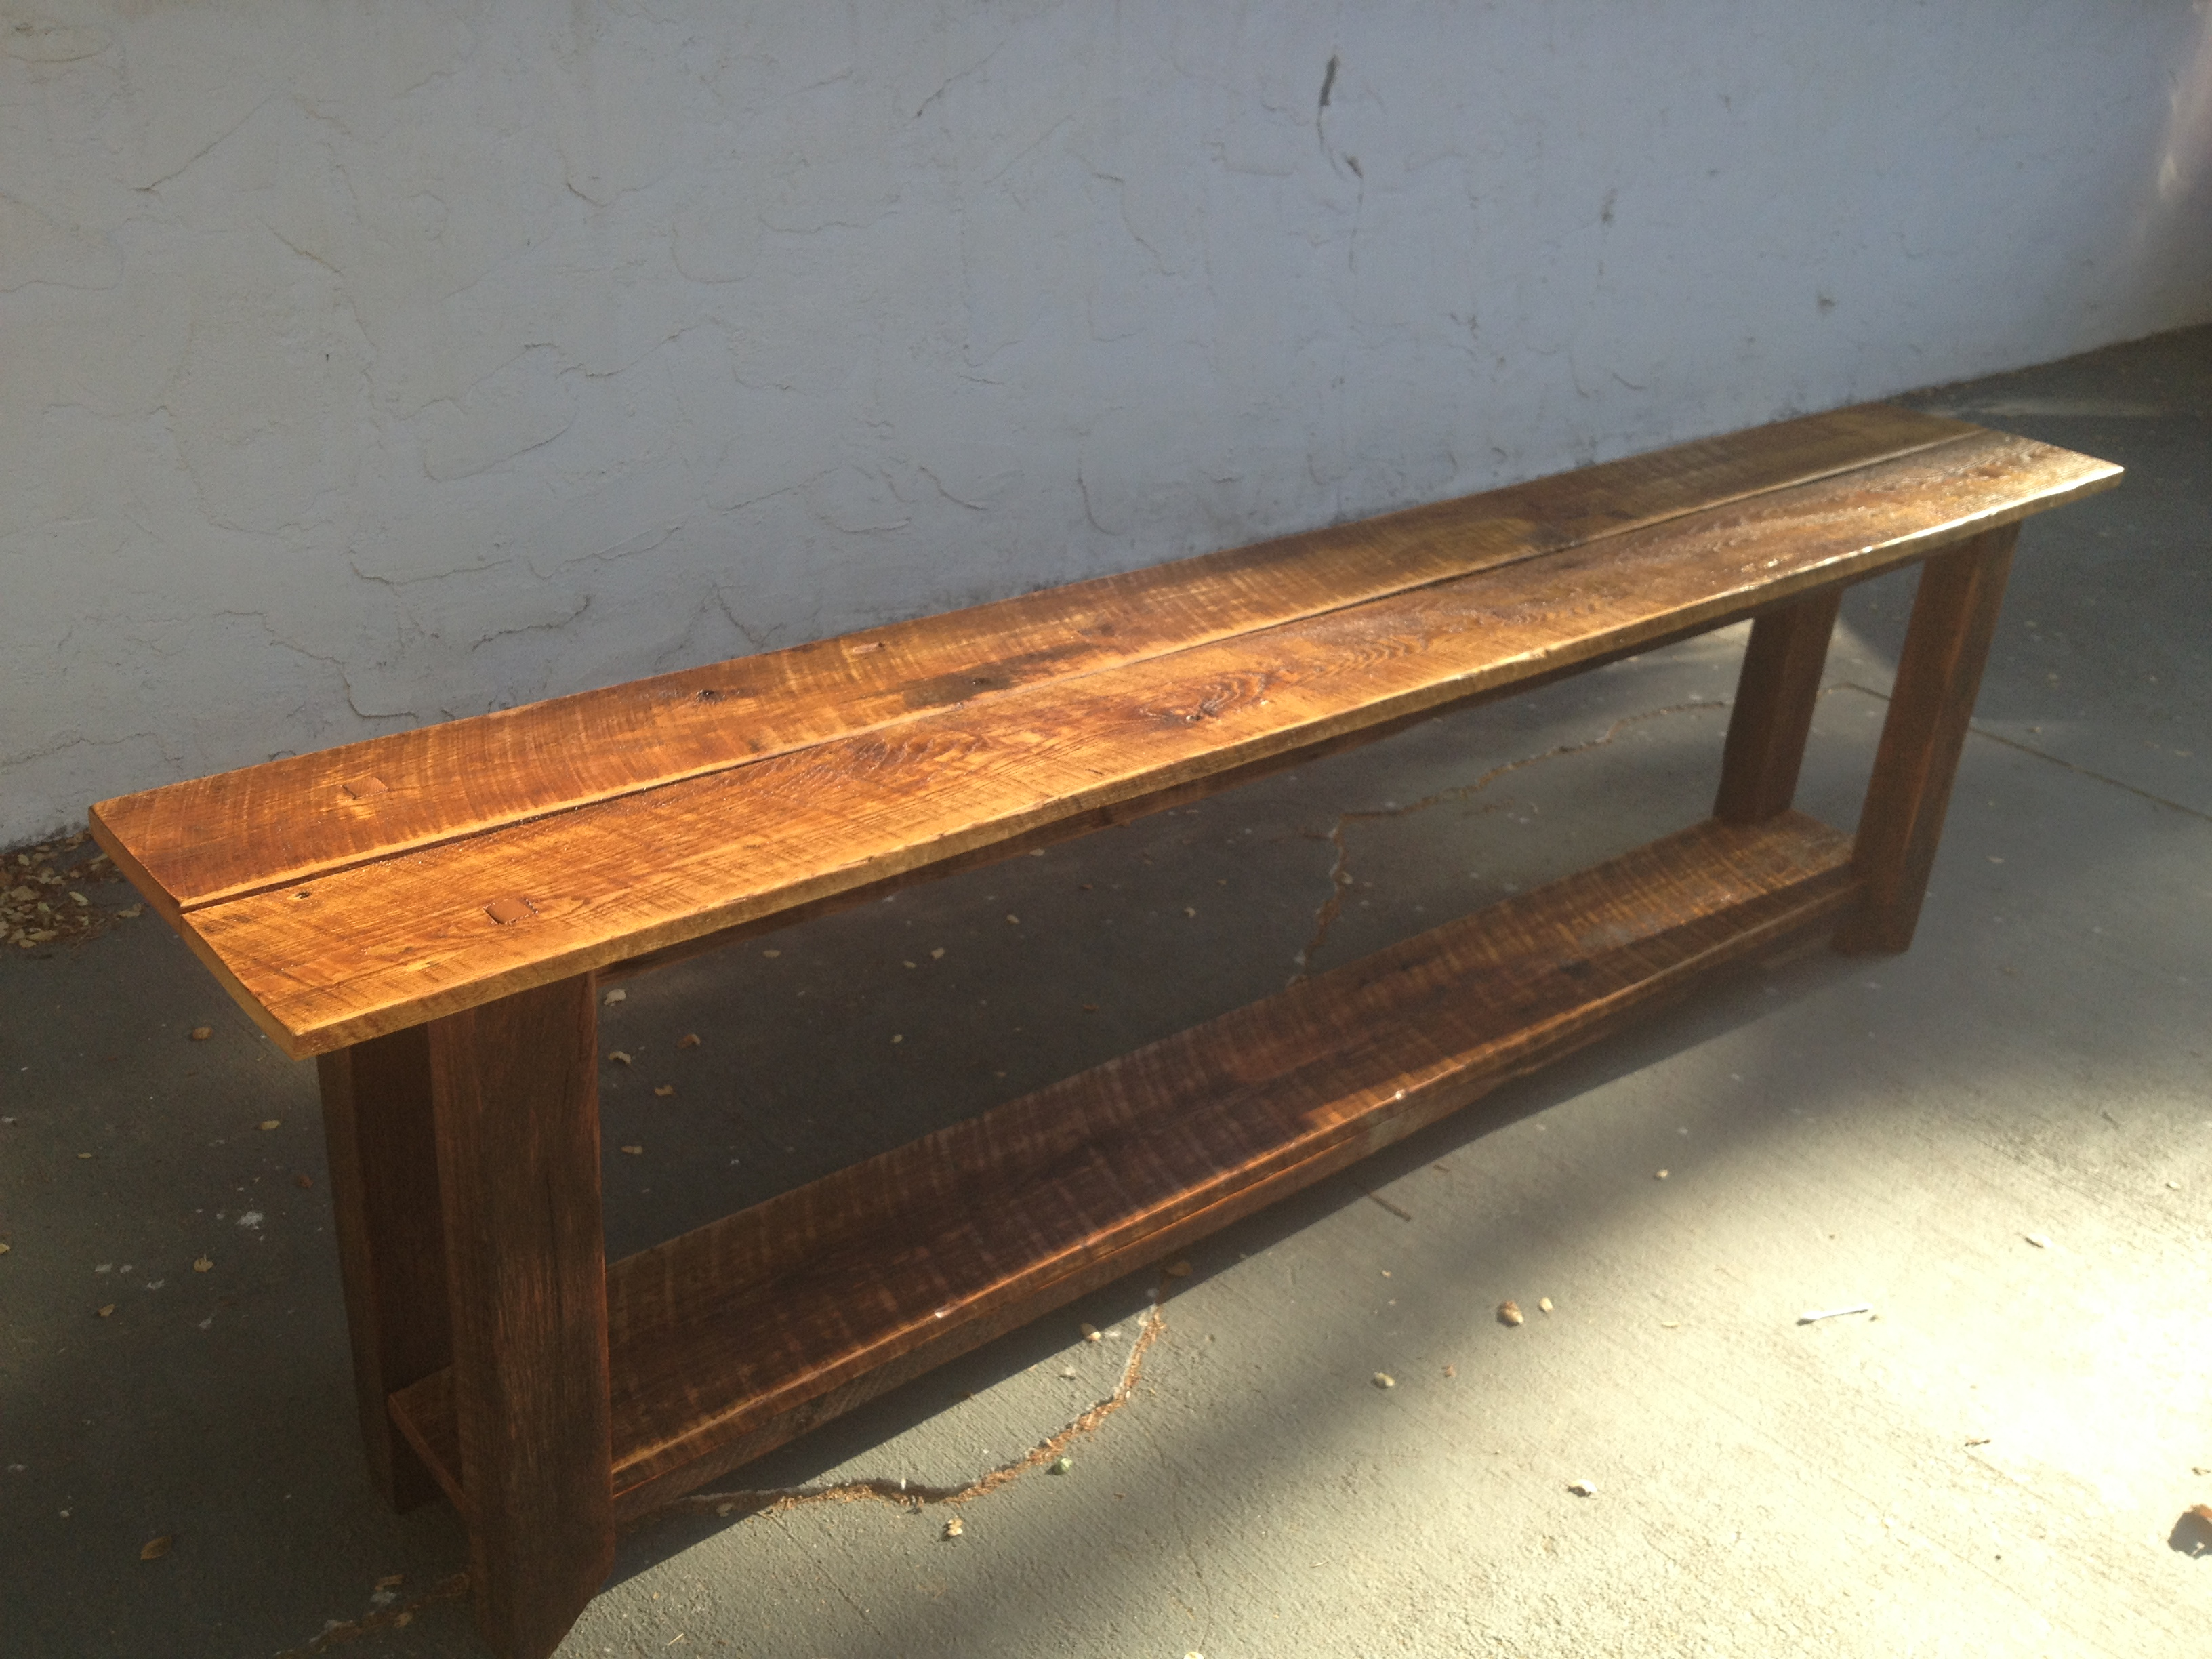 Build Reclaimed Barn Wood Projects DIY PDF easy wood bench plans ...